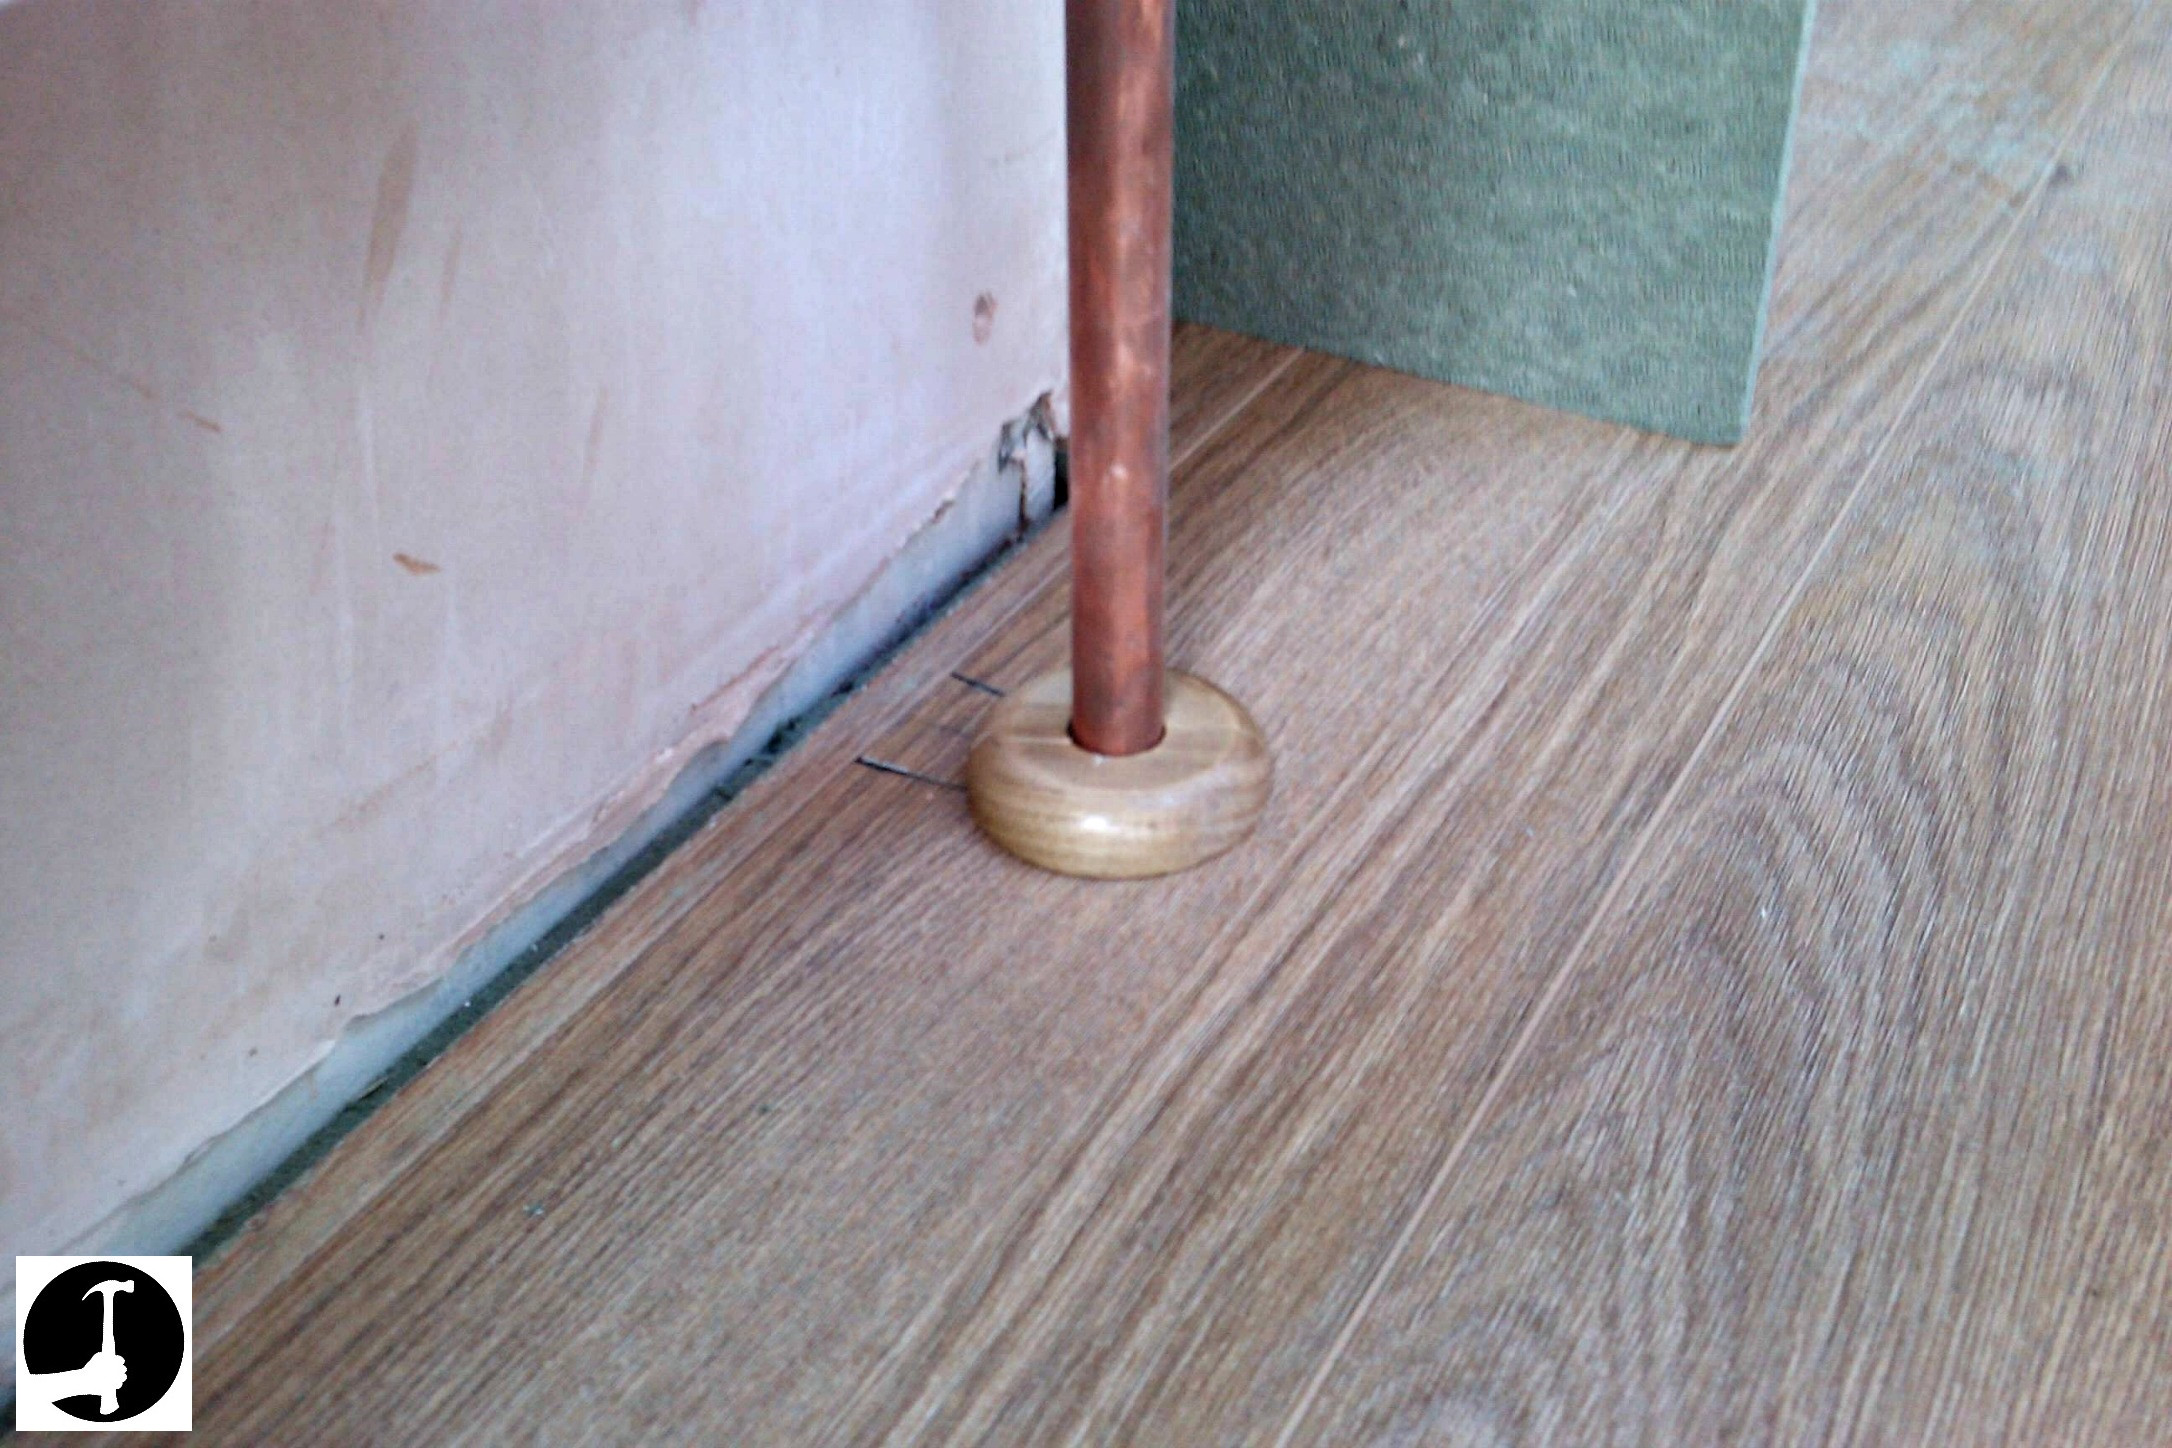 Hardwood Flooring Suppliers Near Me Of How to Install Laminate Flooring with Ease Glued Glue Less Systems Throughout How to Cut Laminate Around Pipes